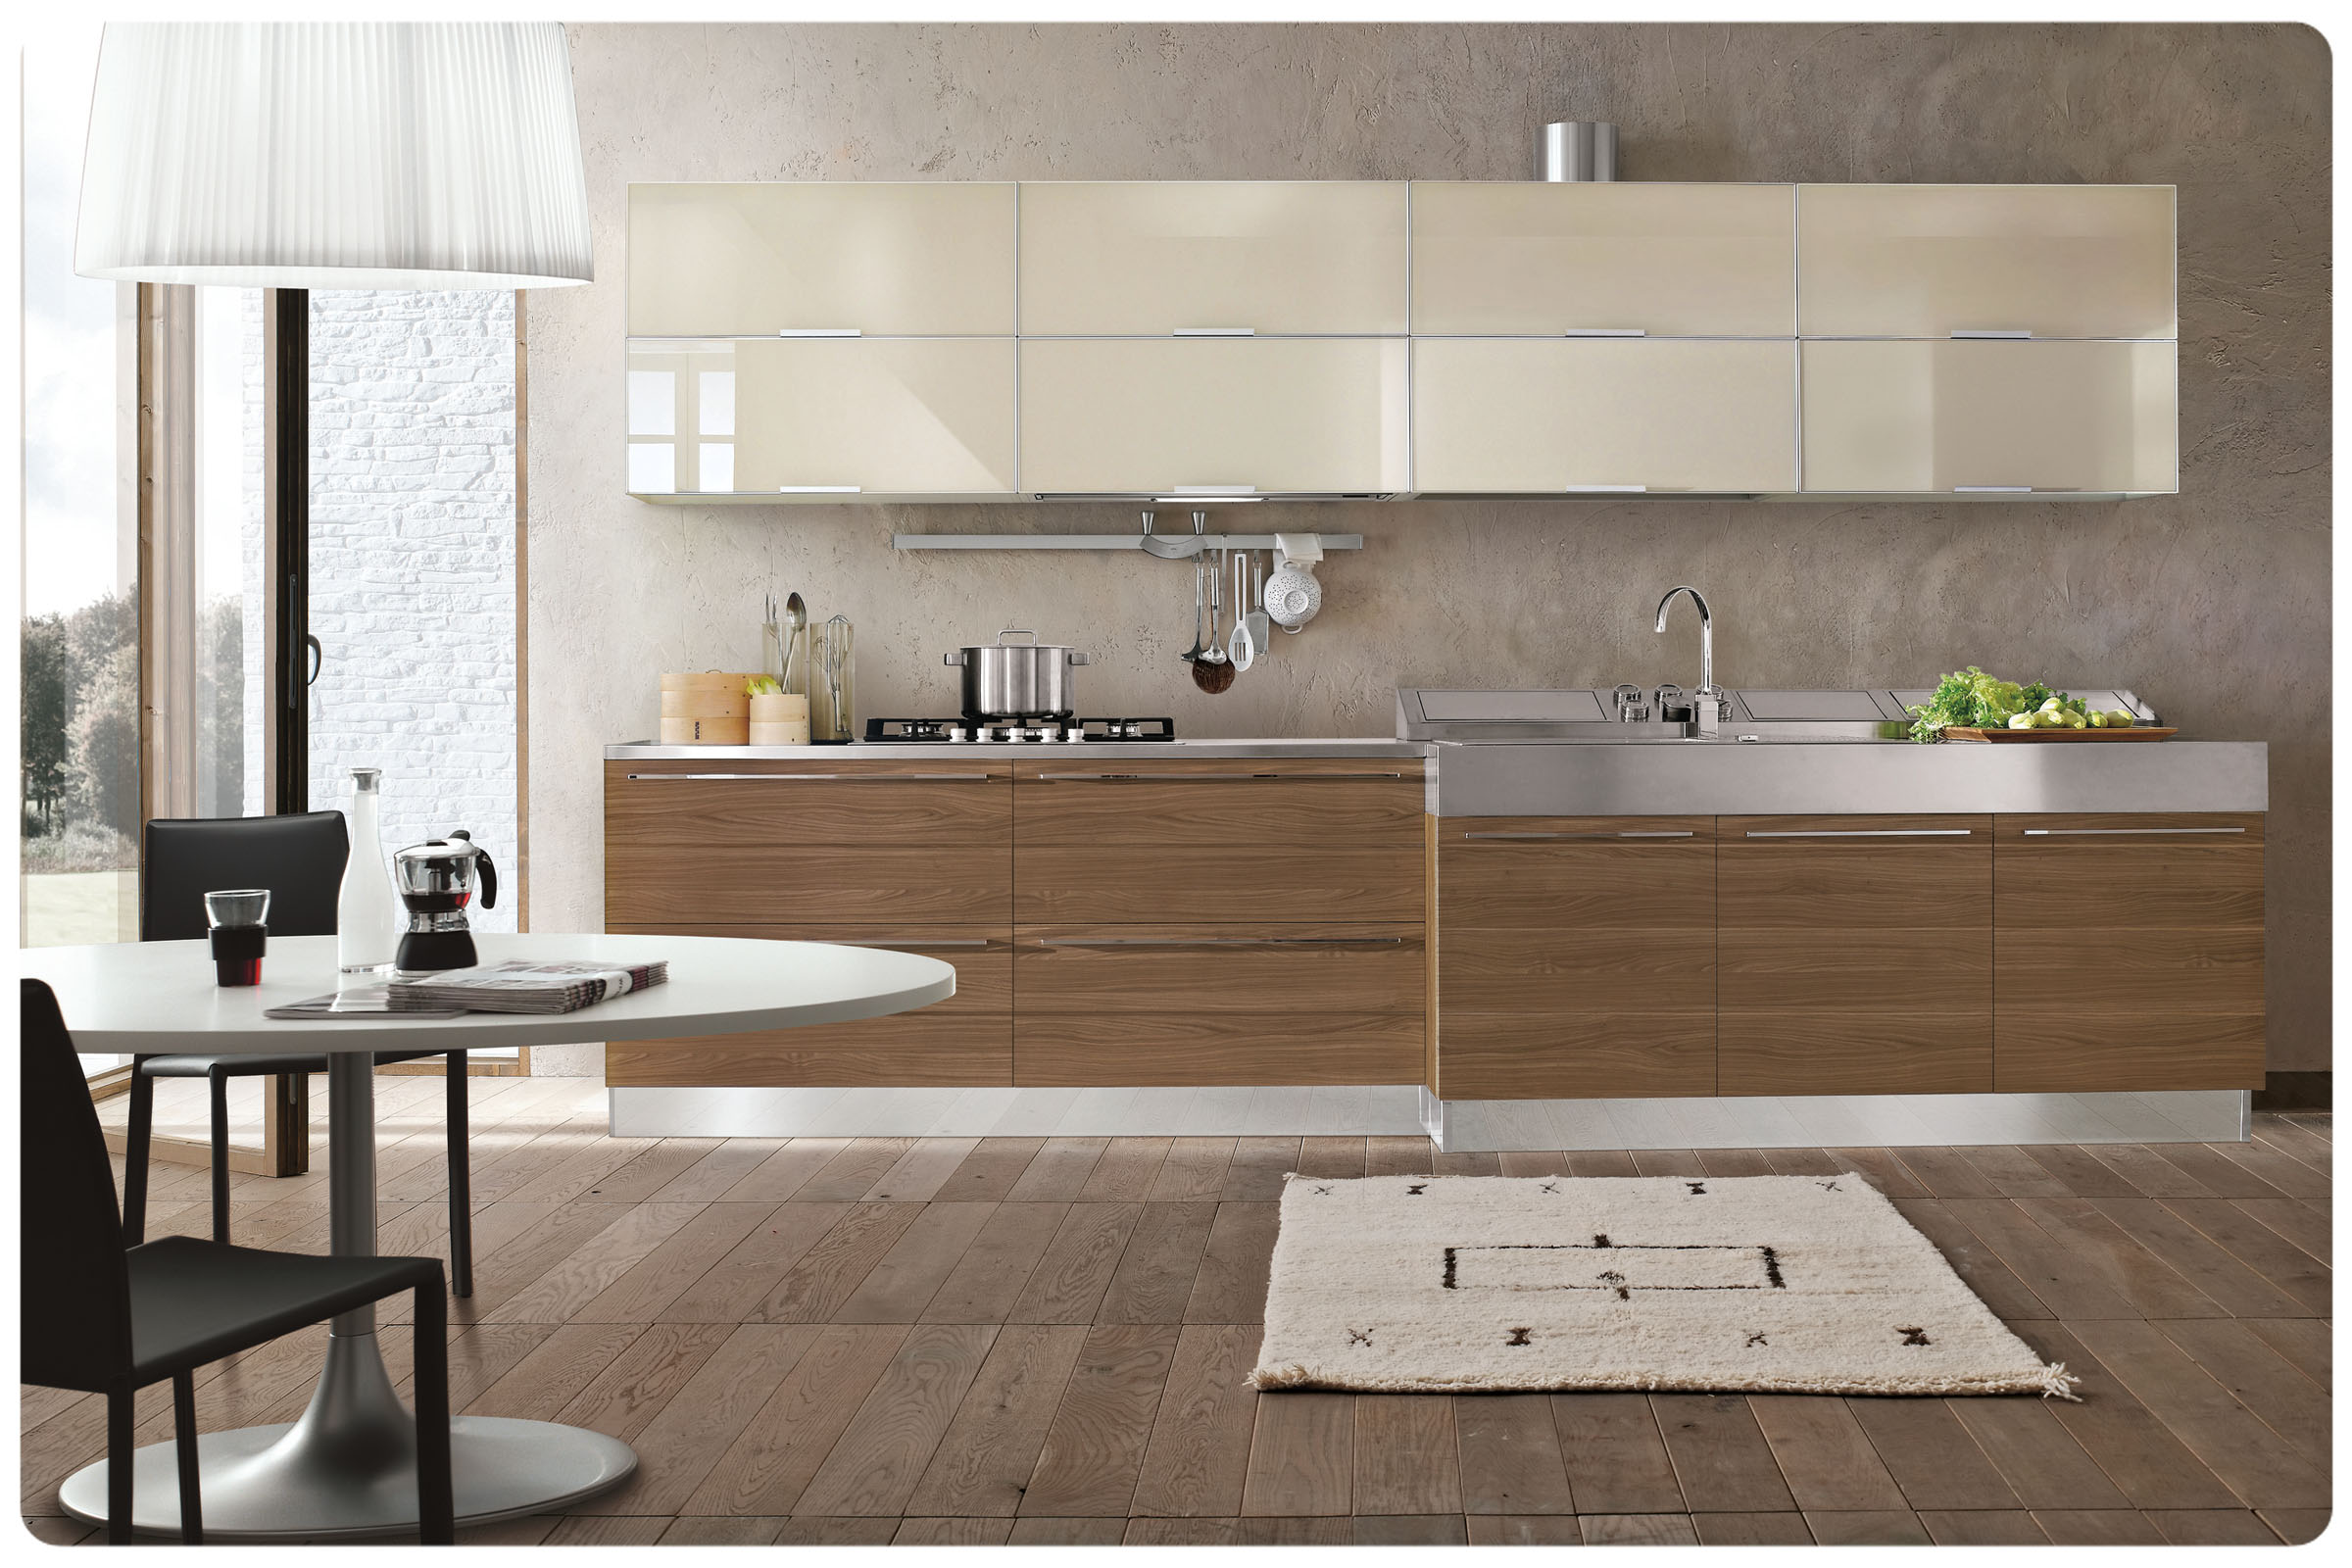 Emejing Cucine Stosa Milano Photos - Home Ideas - tyger.us